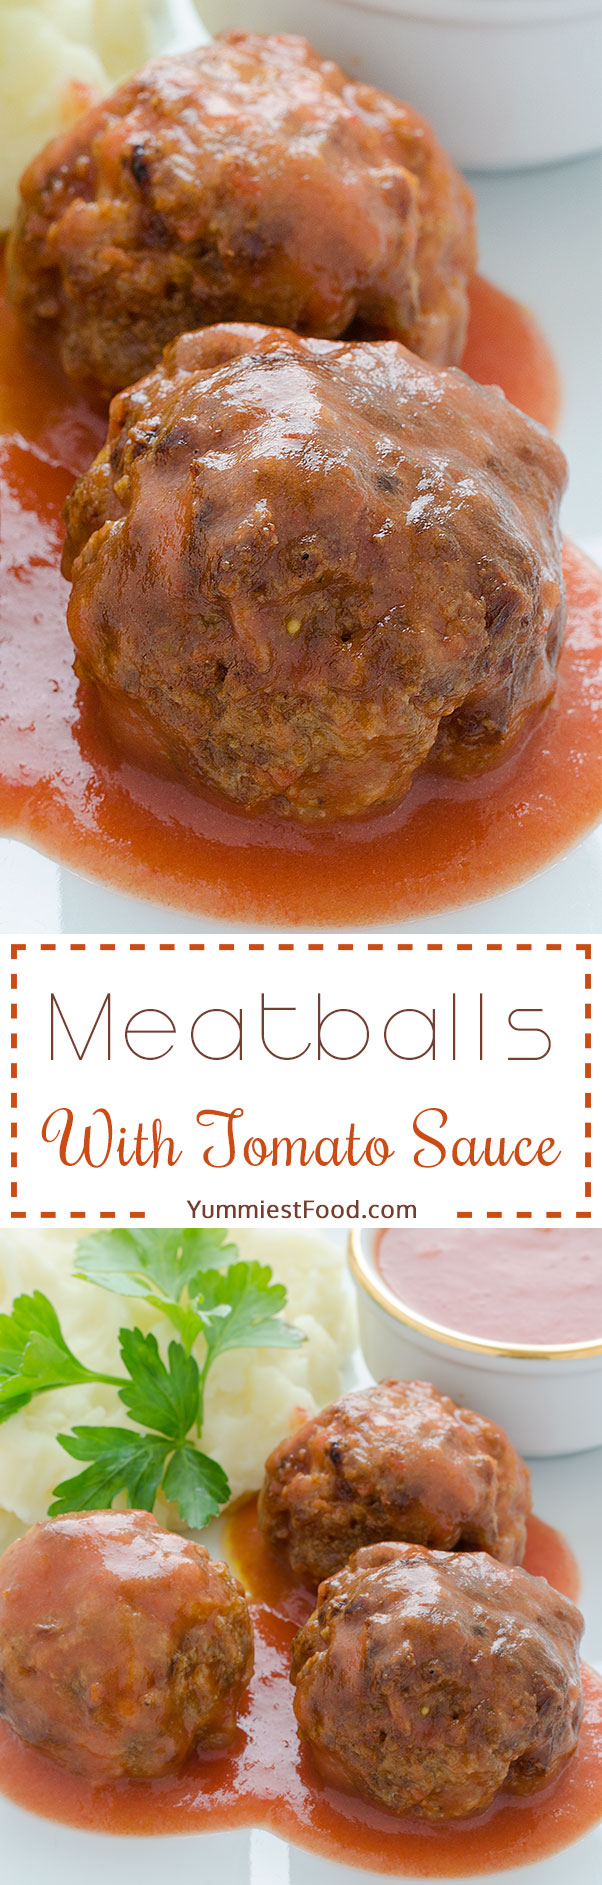 Meatballs With Tomato Sauce - Old, easy and delicious recipe - meatballs with tomato sauce which you will like the most